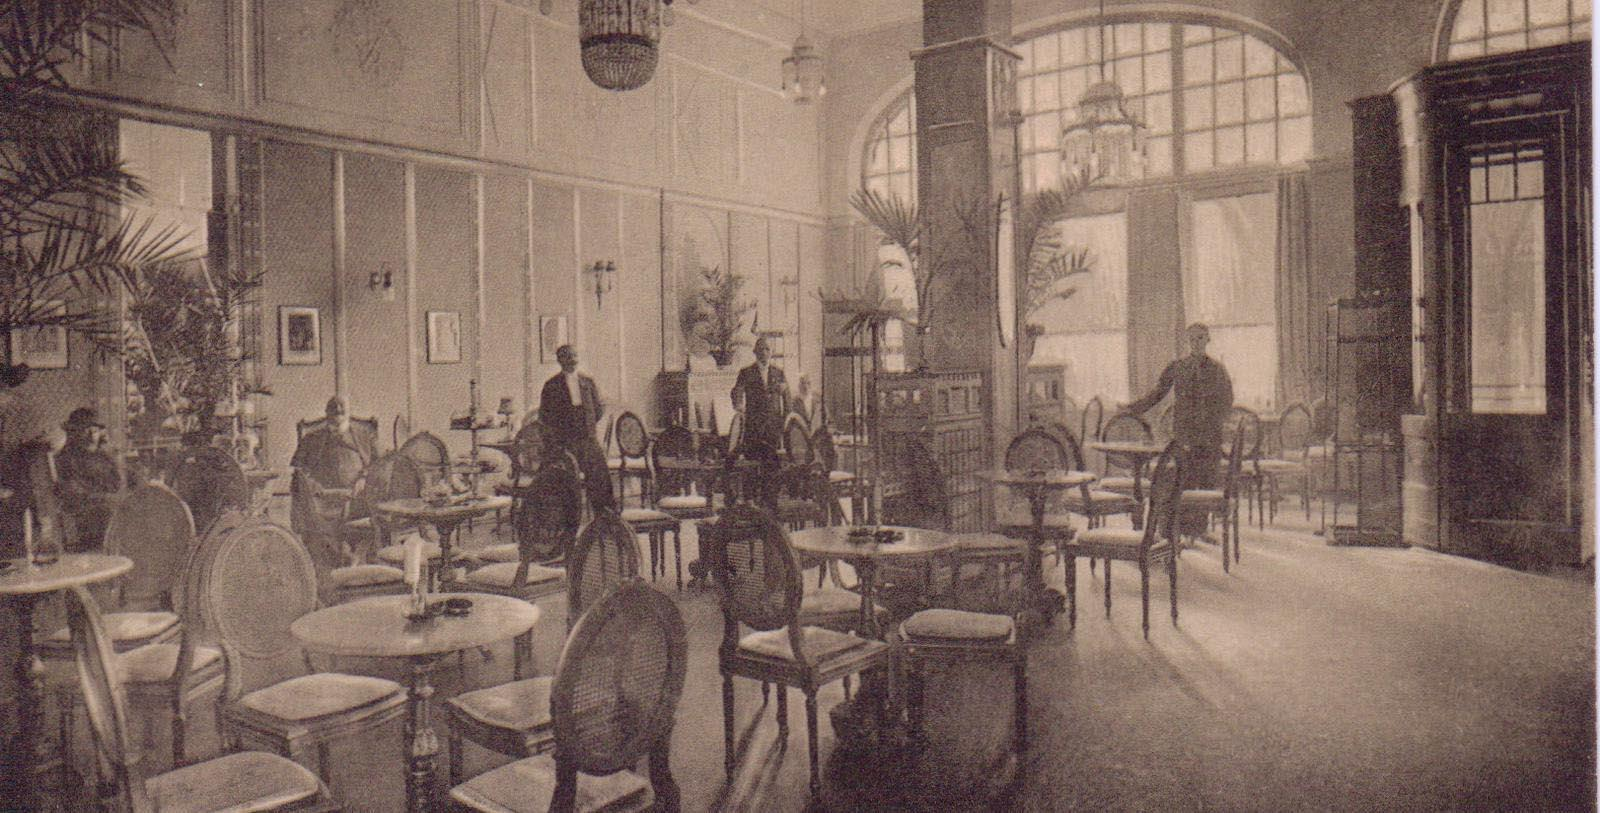 Historic Image of Guests Reichshof Hamburg, Curio Collection by Hilton, 1910, Member of Historic Hotels Worldwide, Hamburg, Germany, Discover